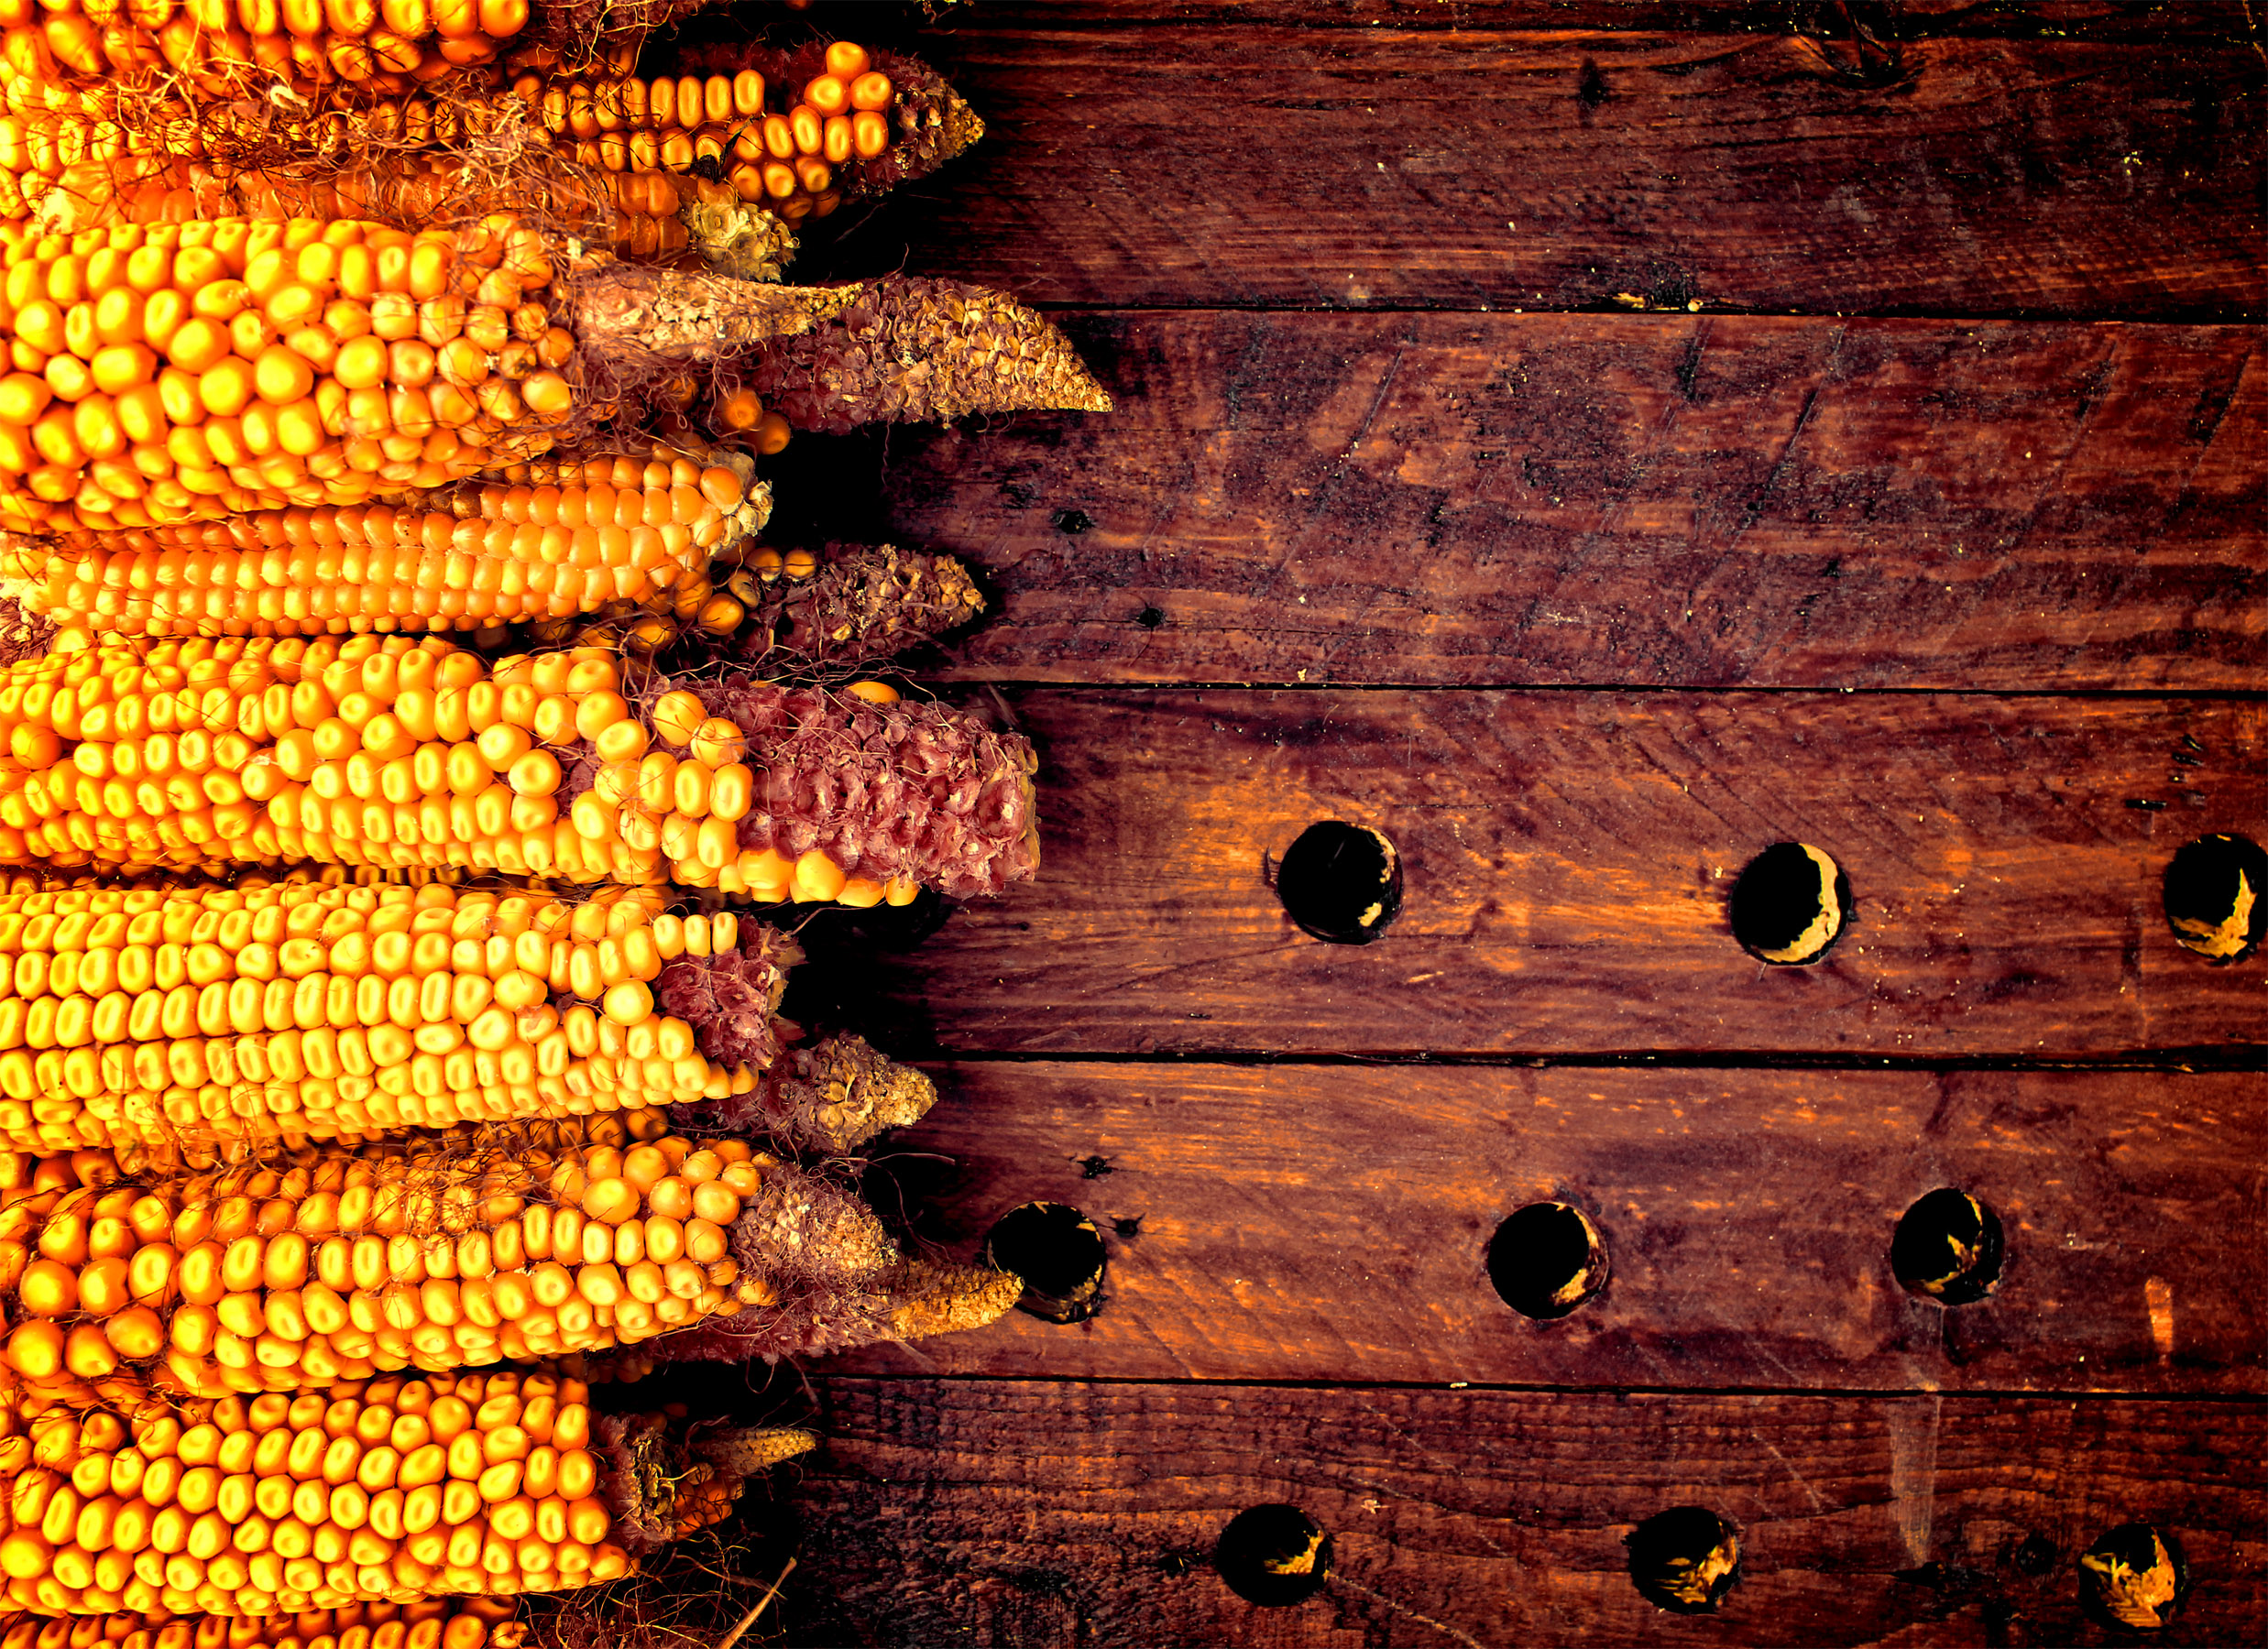 Rustic corn cobs on wooden background - organic farming photo